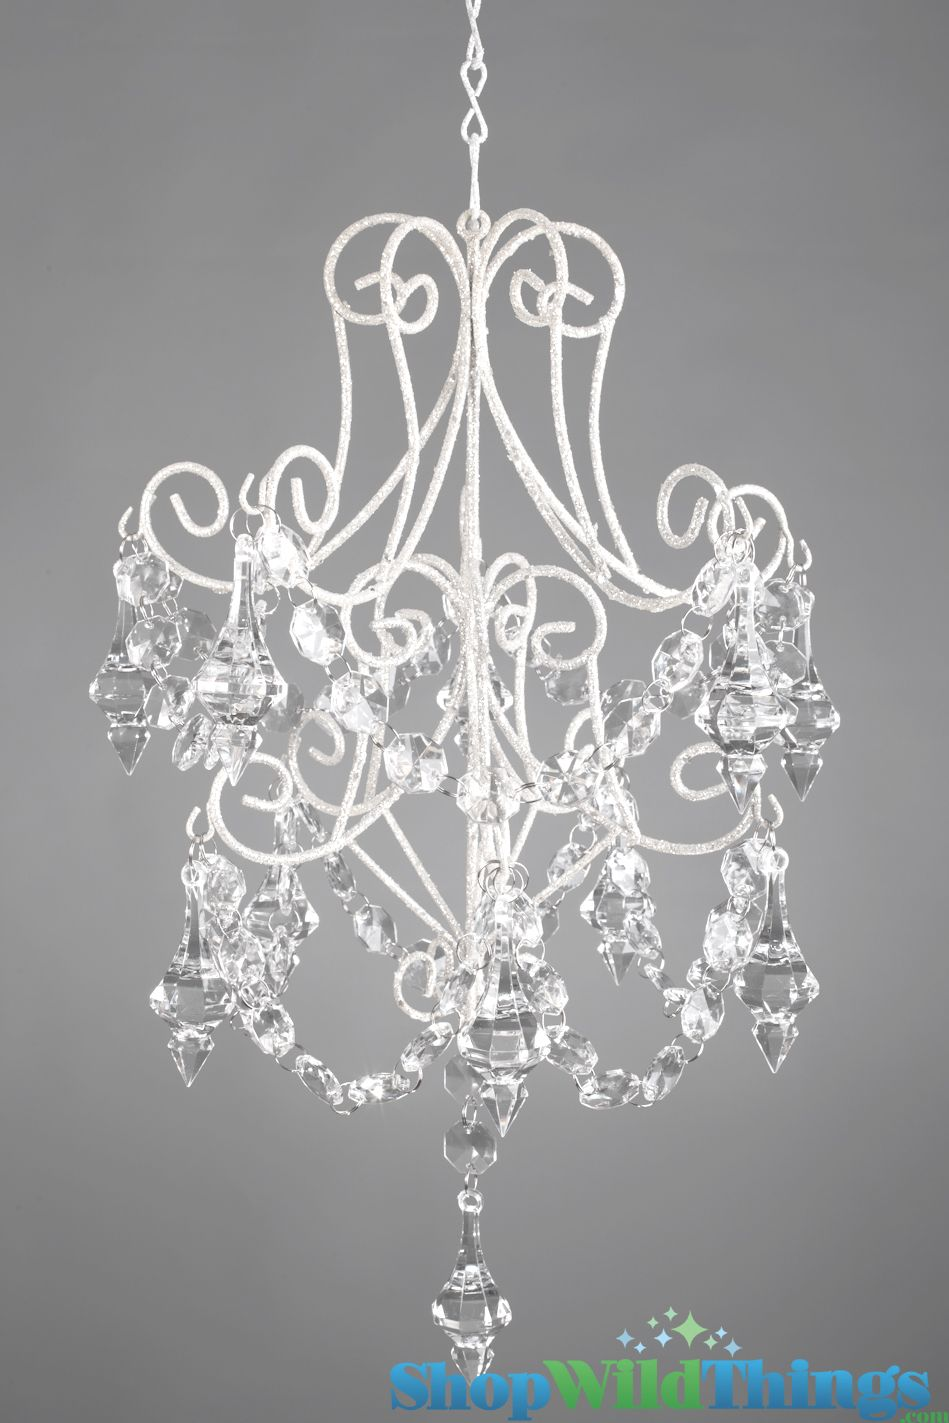 32 99 Create Your Very Own Chandelier Decoration Using Our White Metal Frame Just Add